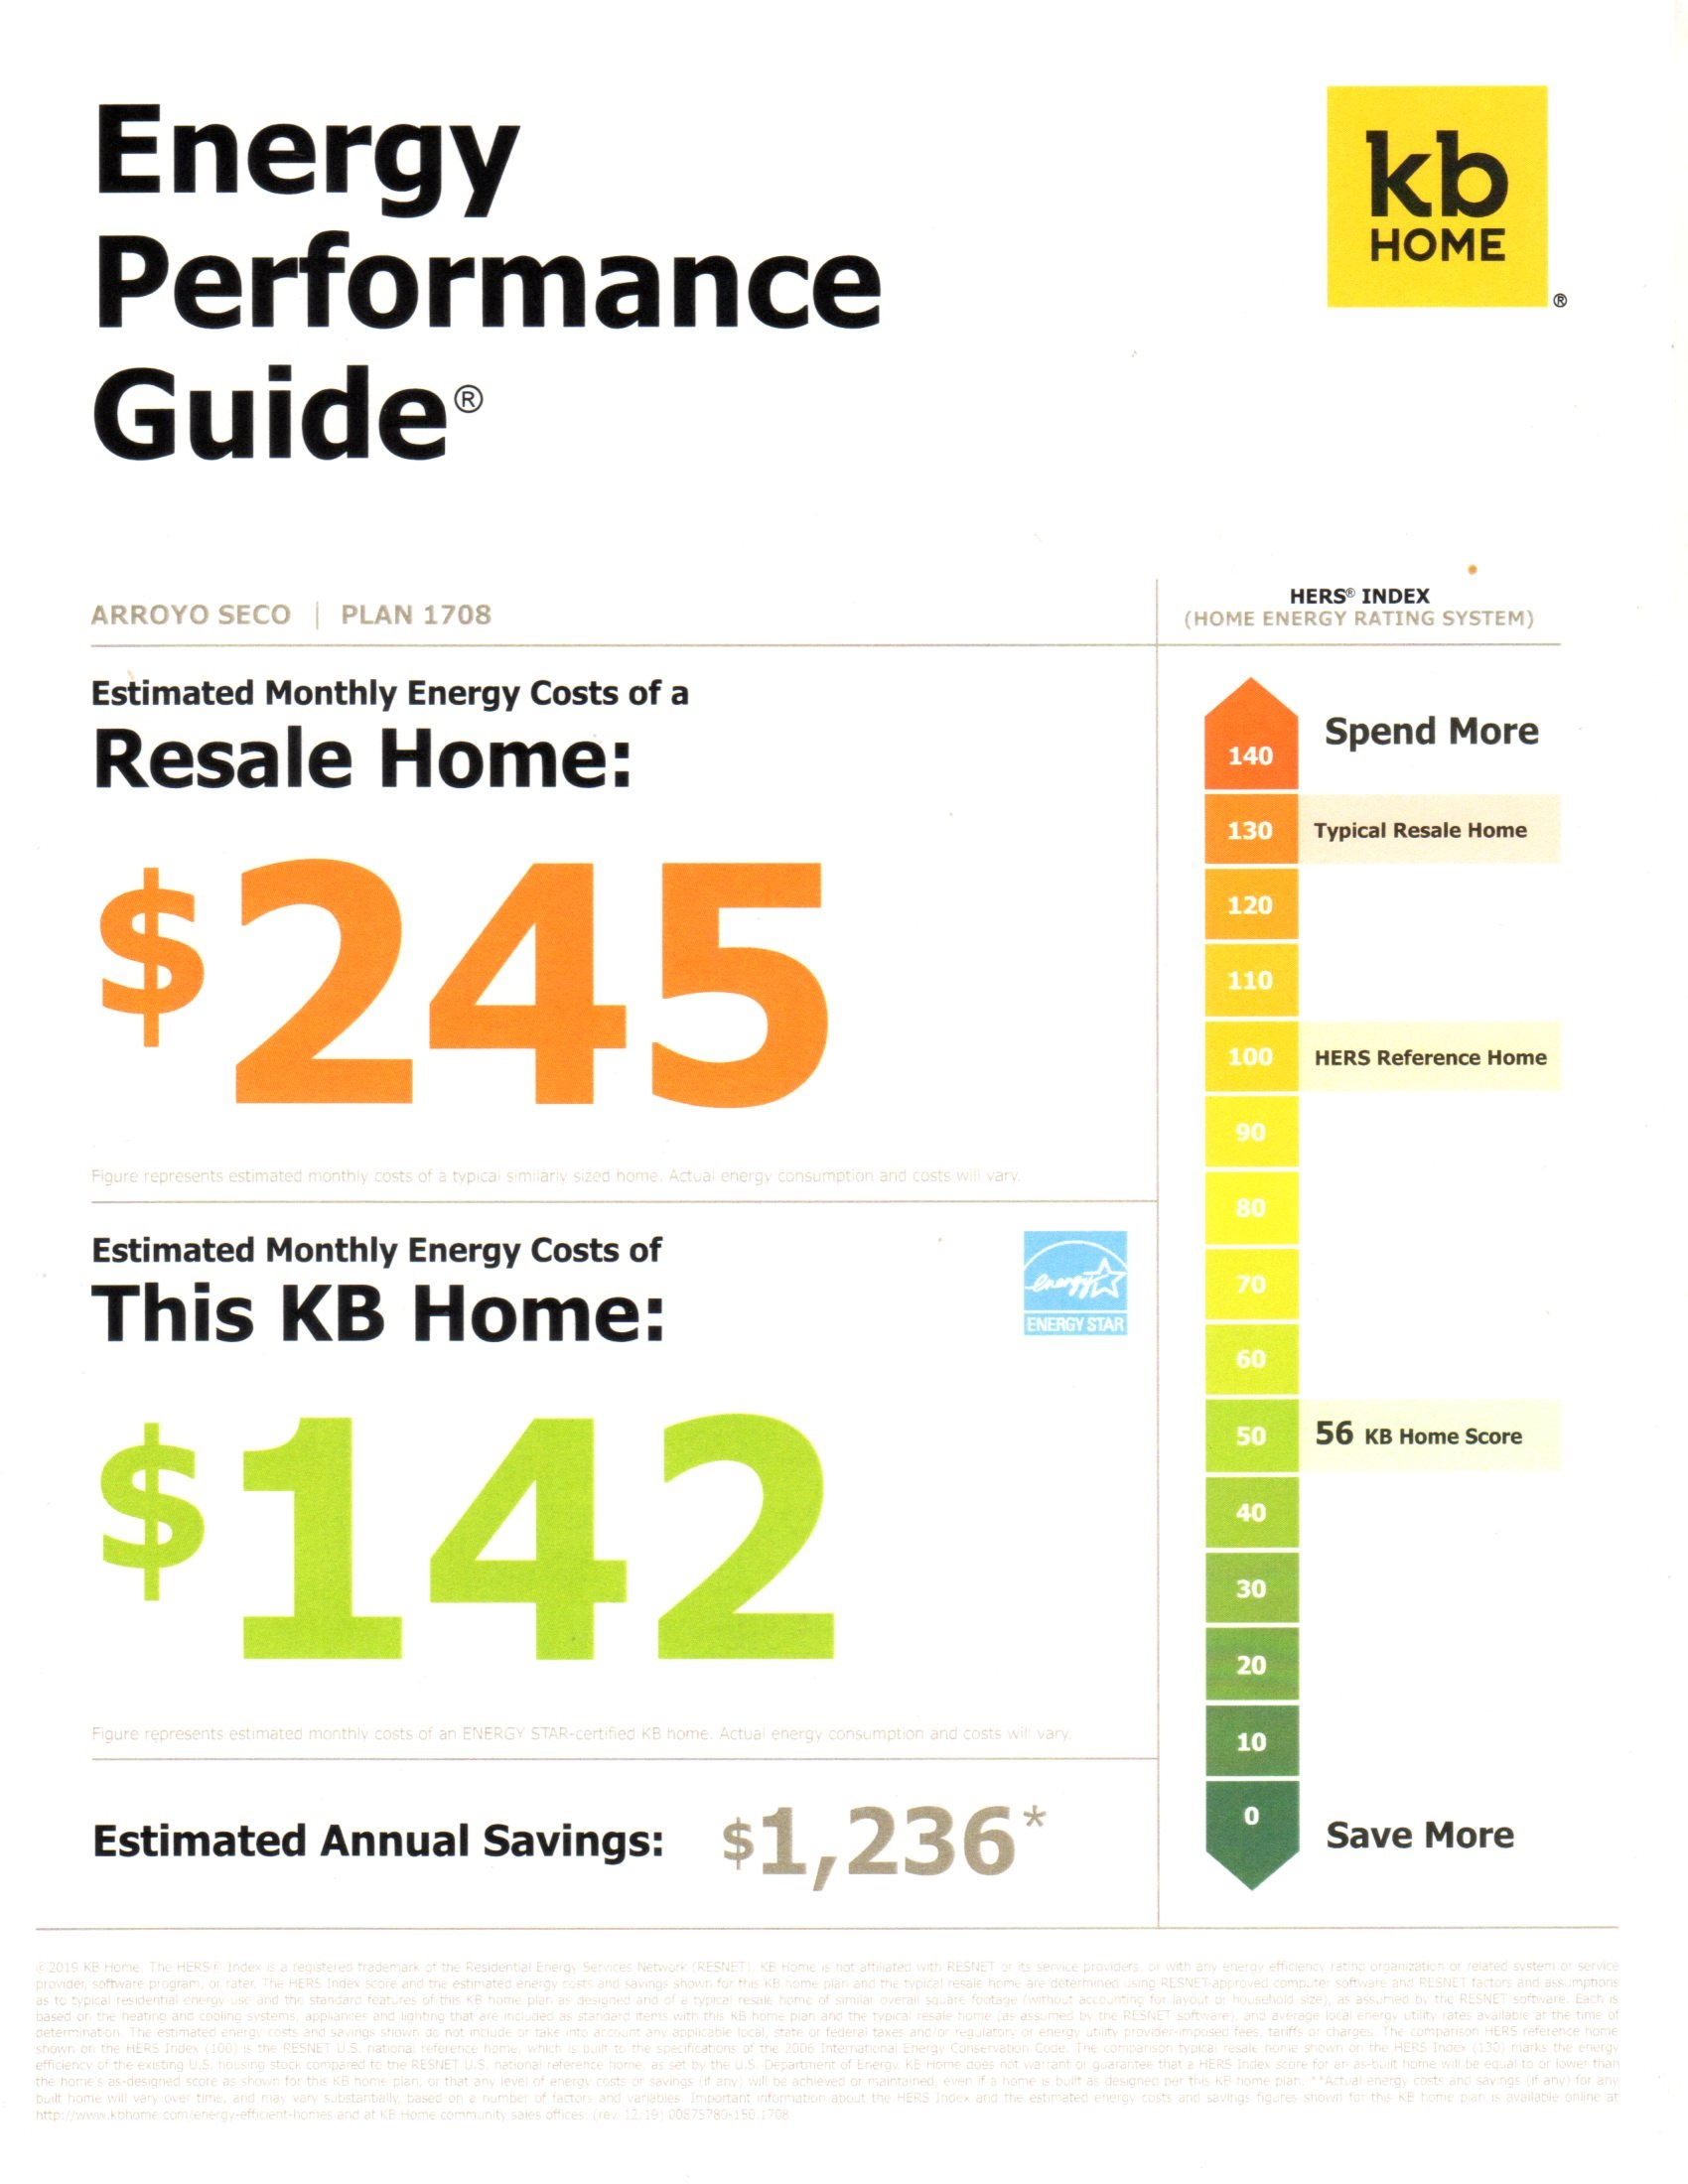 HERS SCORES - ENERGY EFFICIENCY RATING